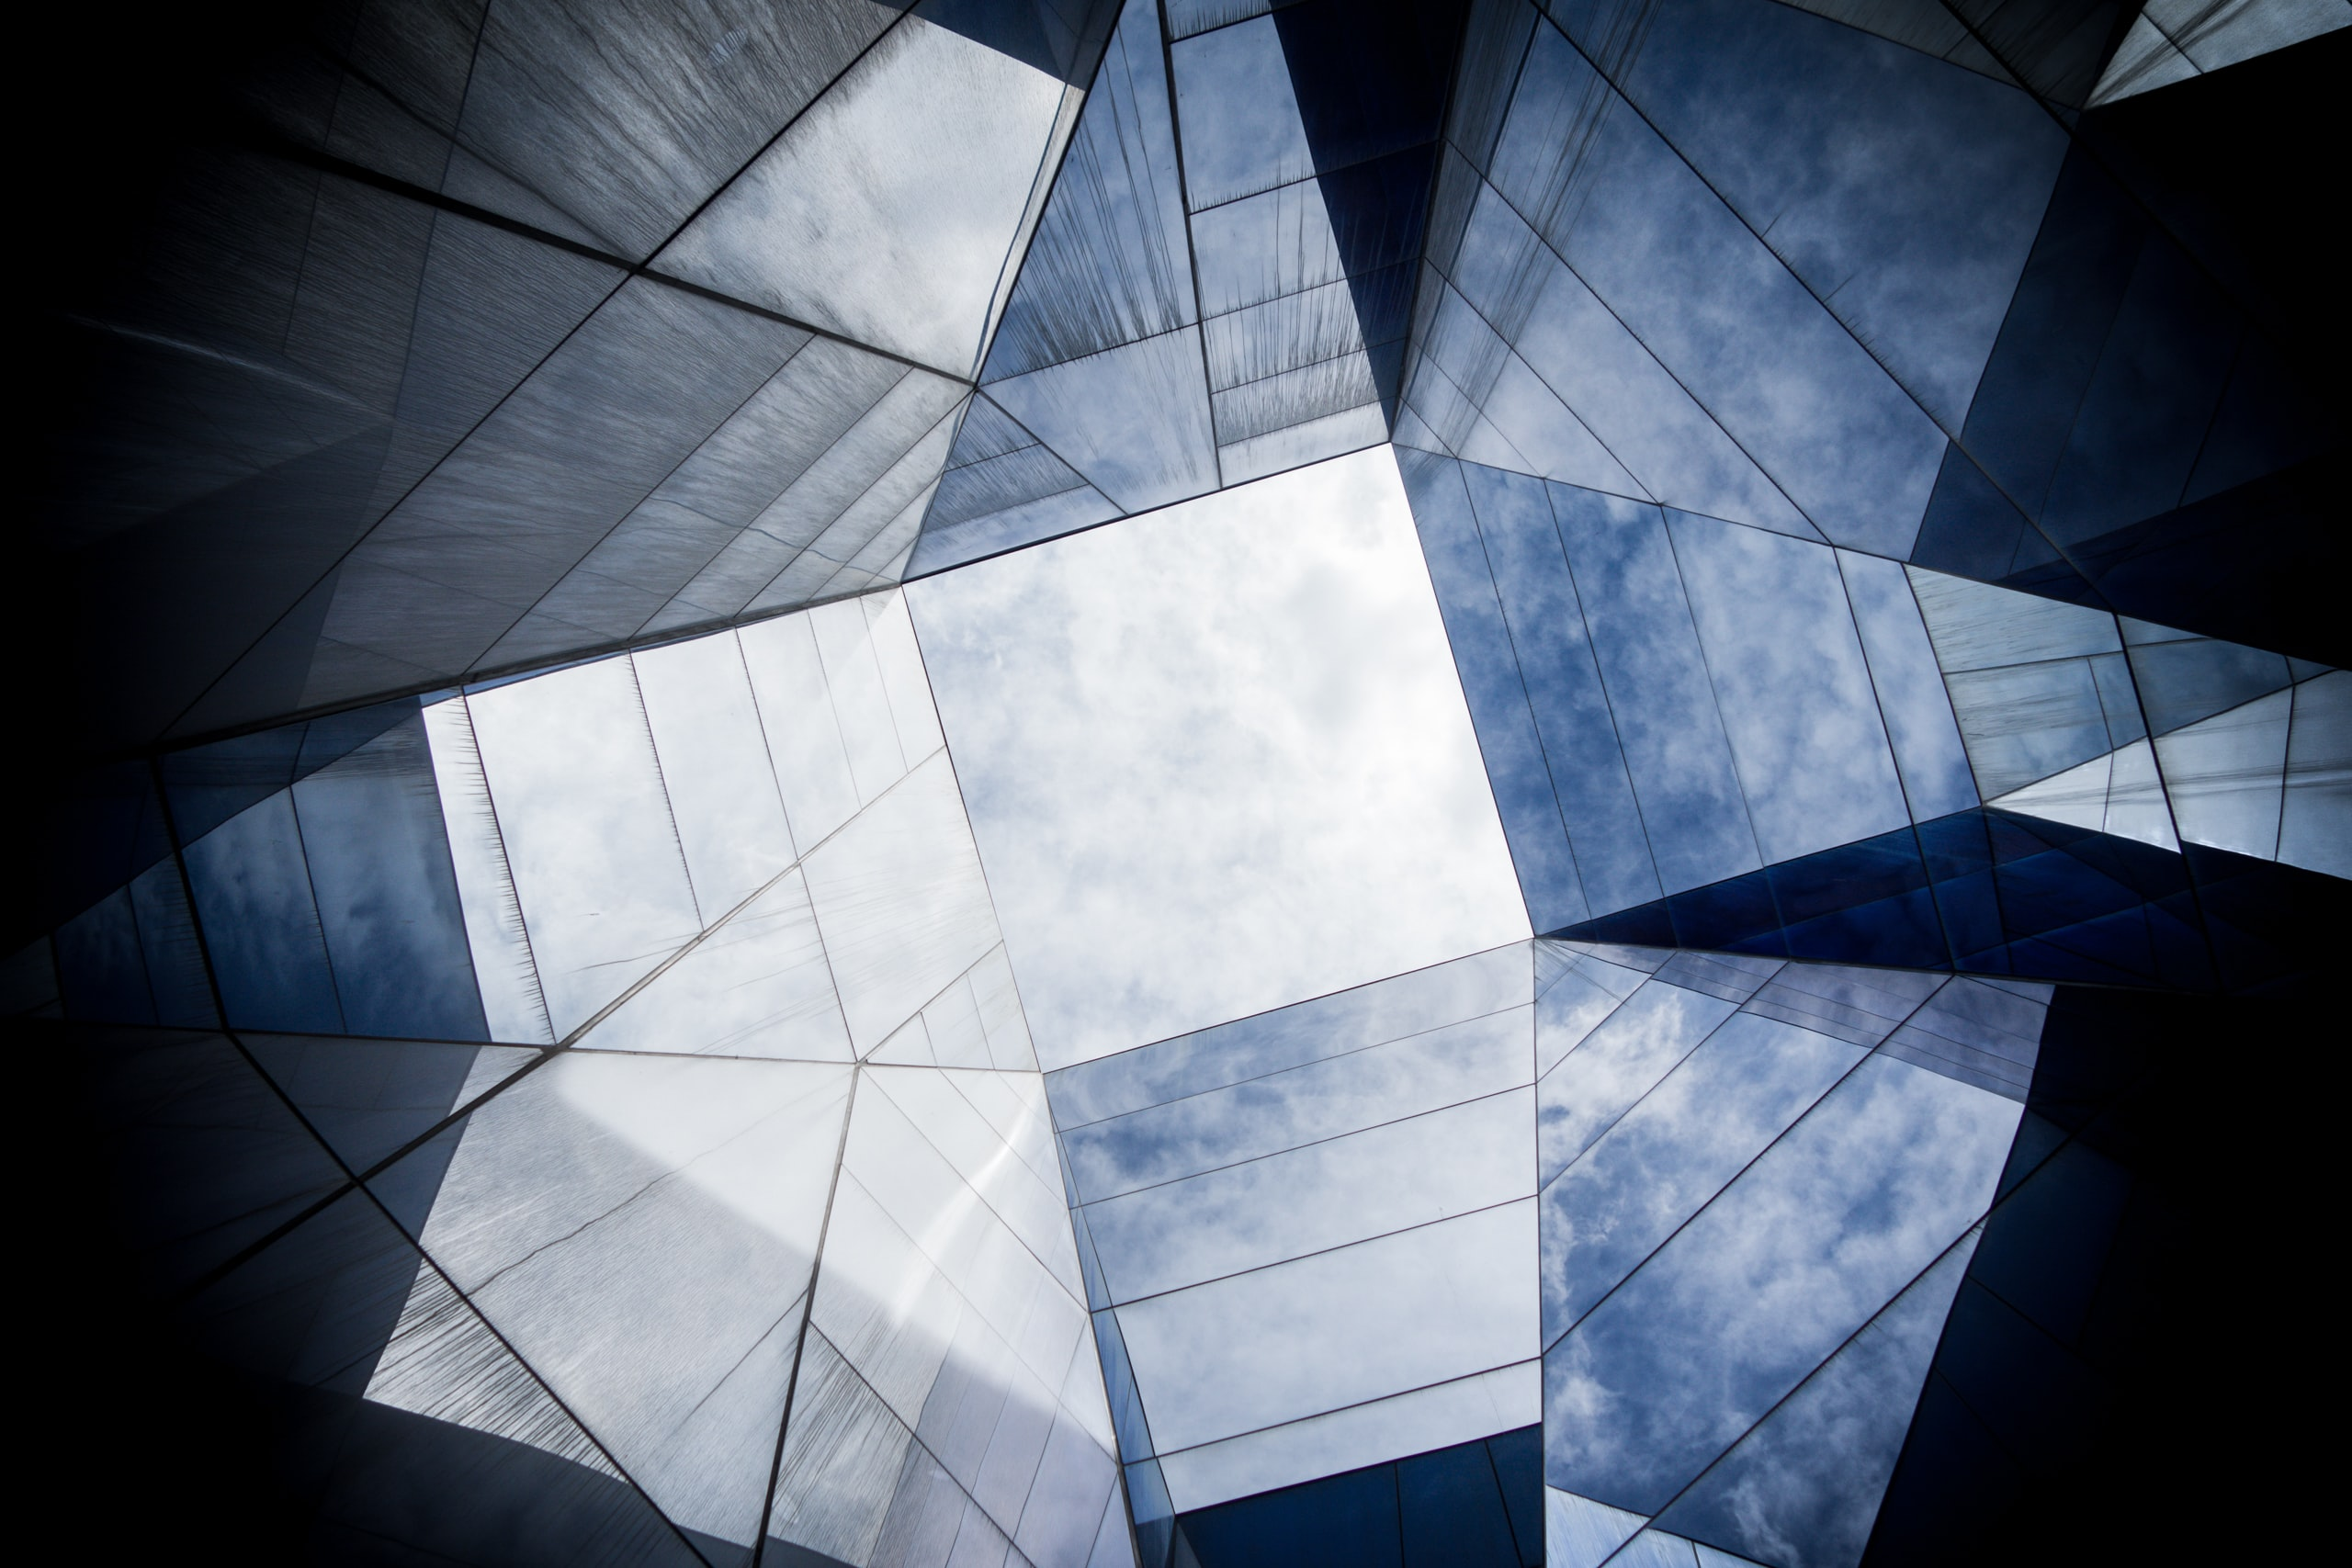 Cloudy sky seen through an abstract shape formed by the angled panes of a glass ceiling